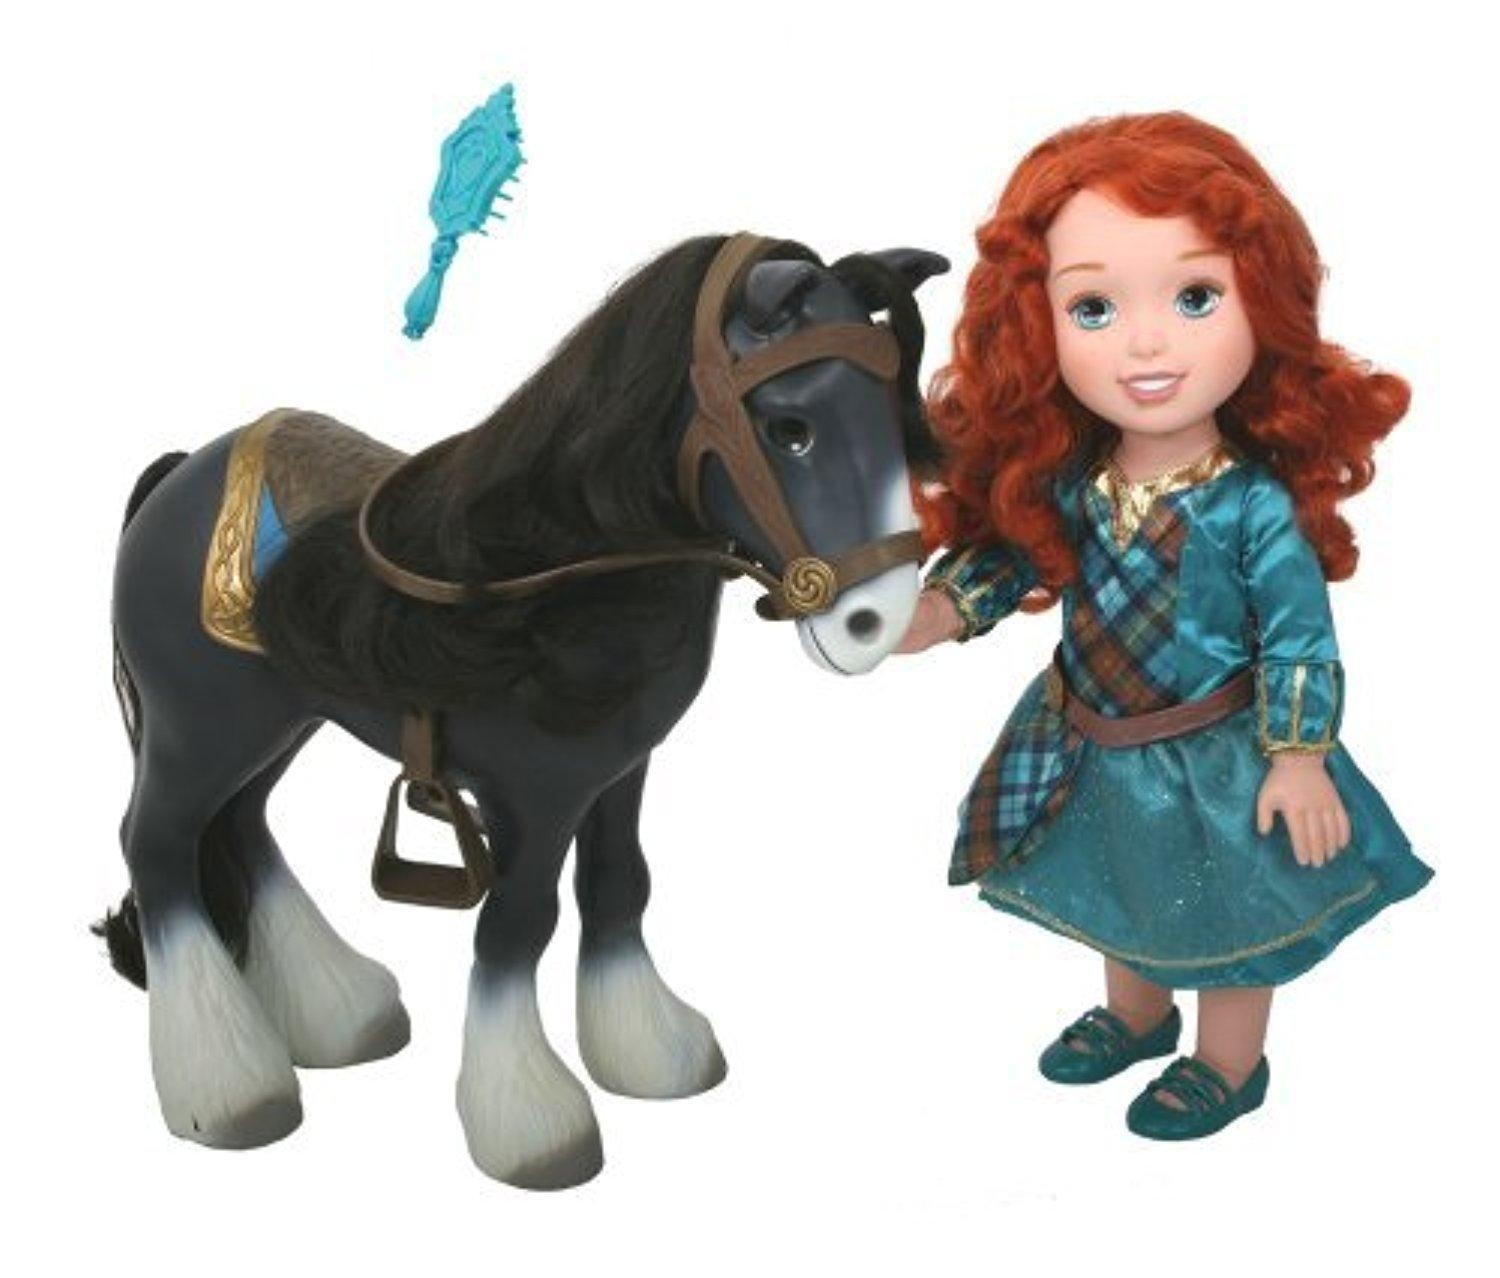 online store: my first disney princess brave merida with angus